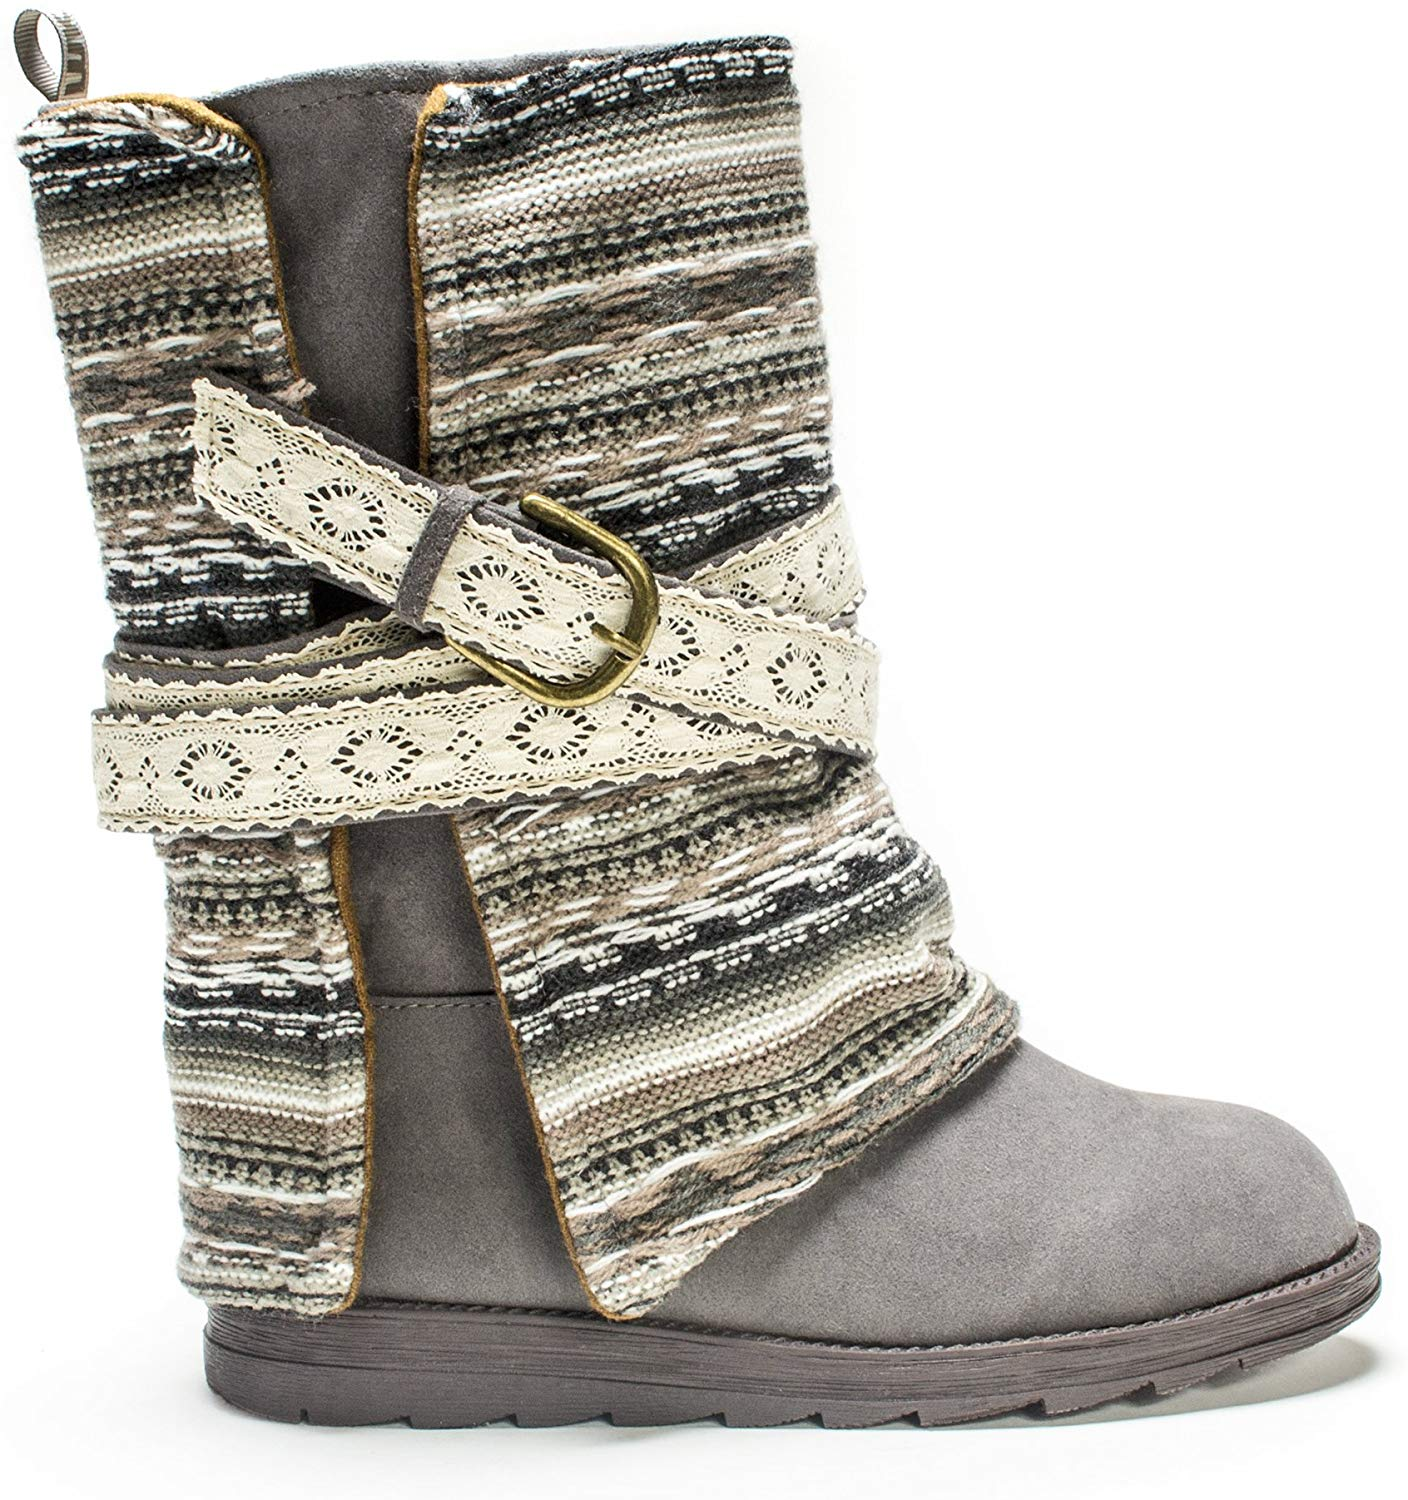 Review of Muk Luks Women's Nikki Belt Wrapped Boot